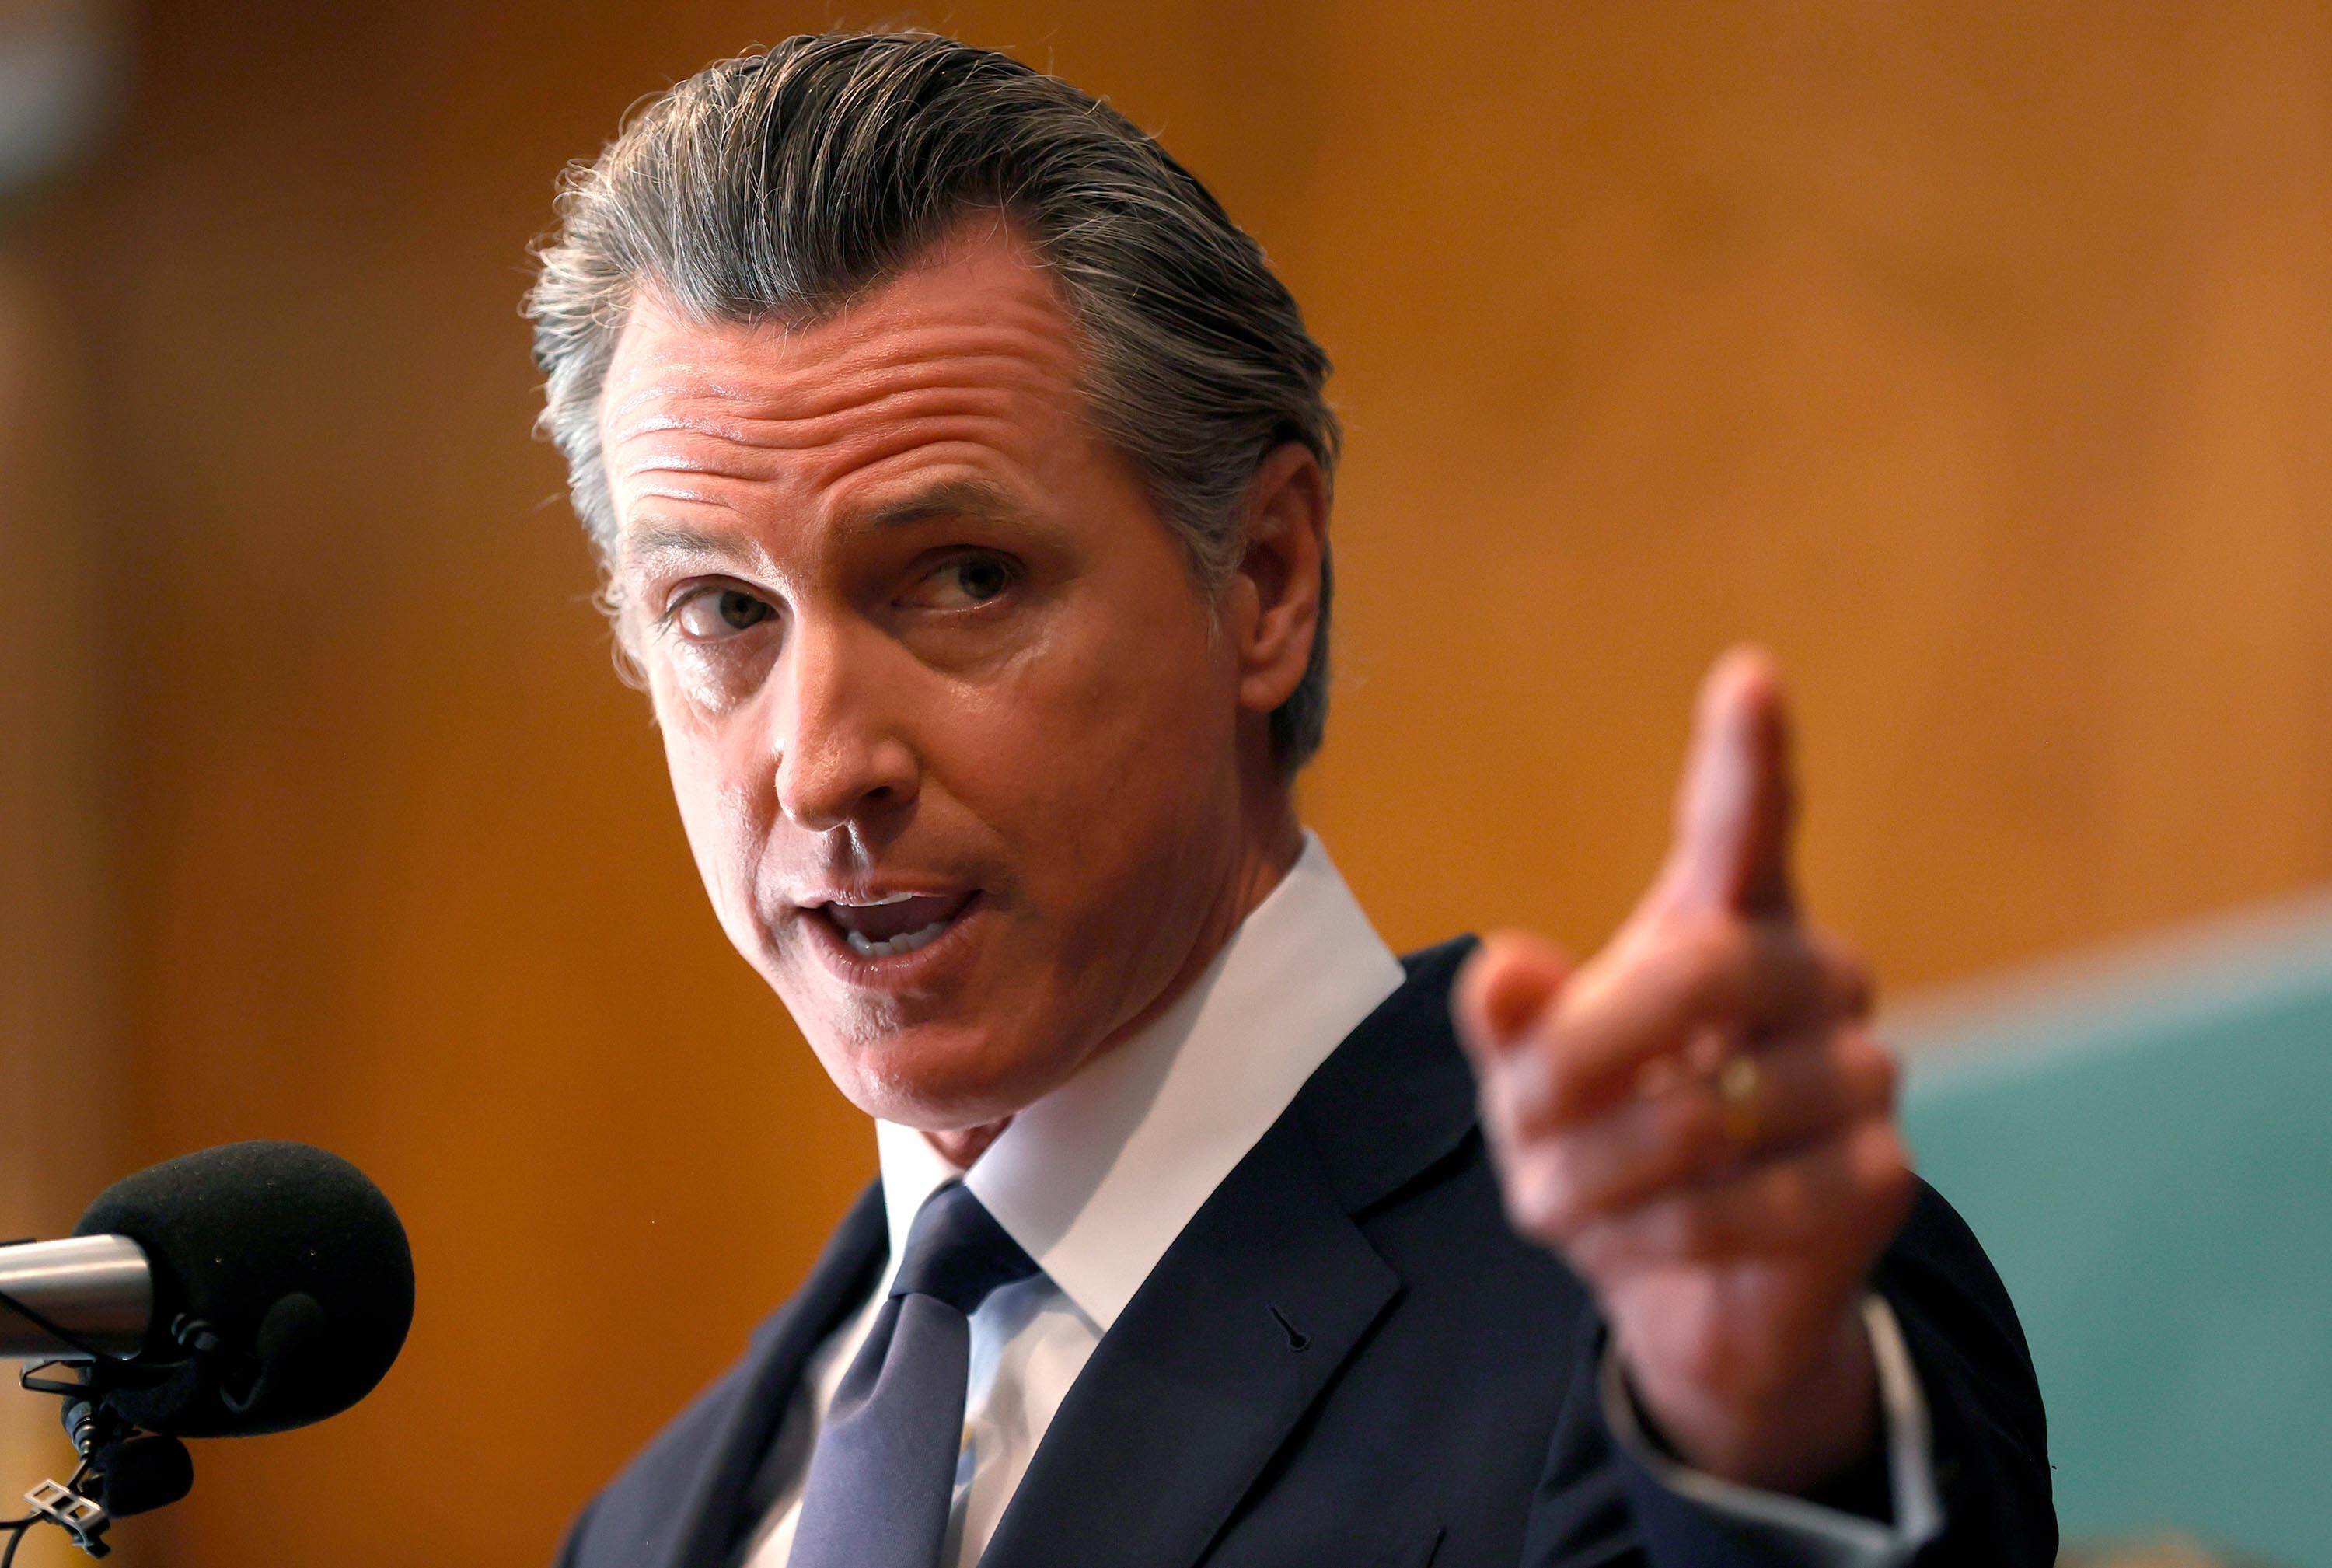 'A $276 million waste': California Democrats seek changes to recall process after Newsom's landslide